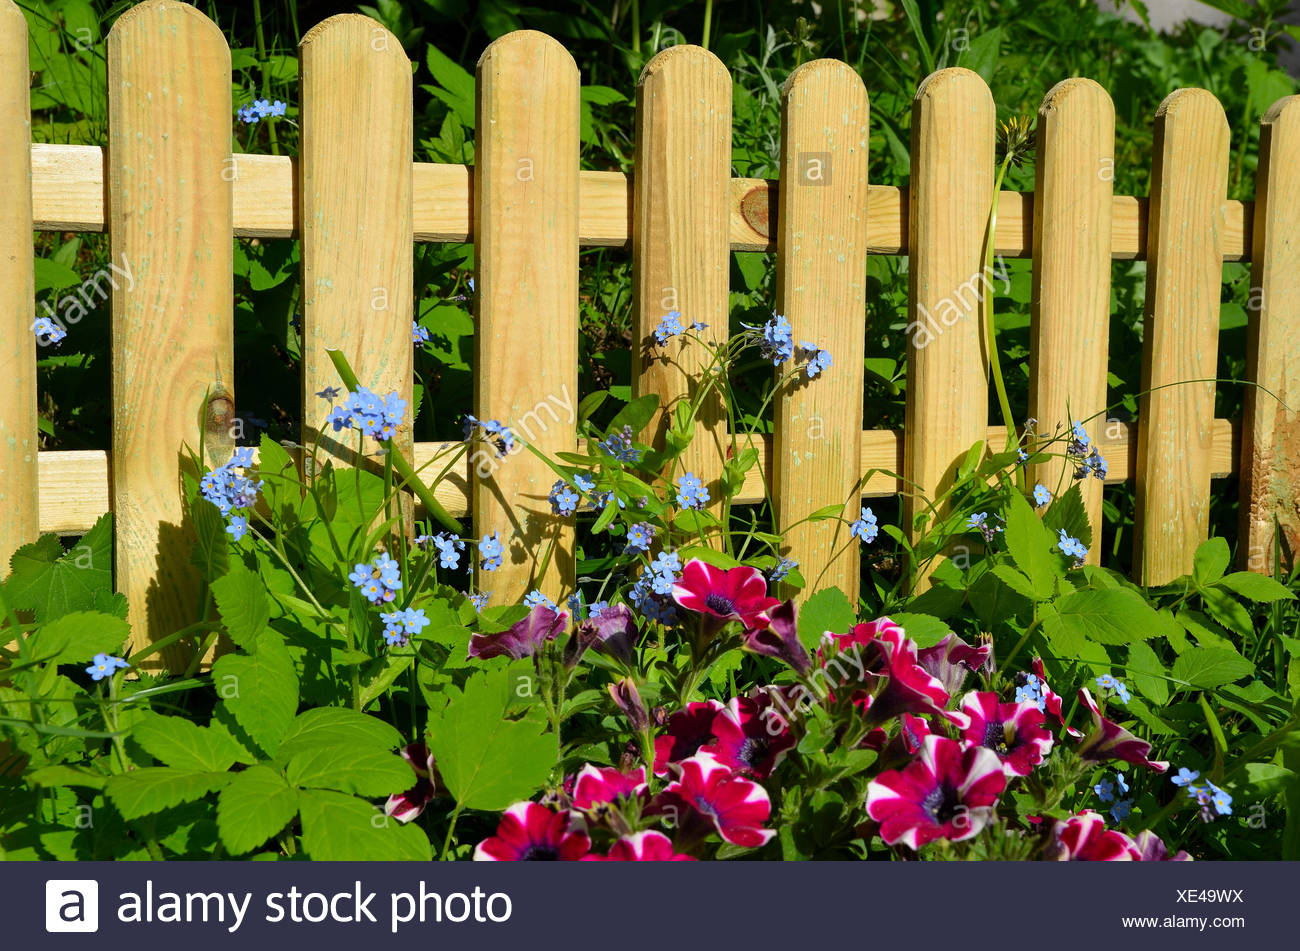 Wood Bed Fence Fence In Fencing Garden Fence Wooden Fence